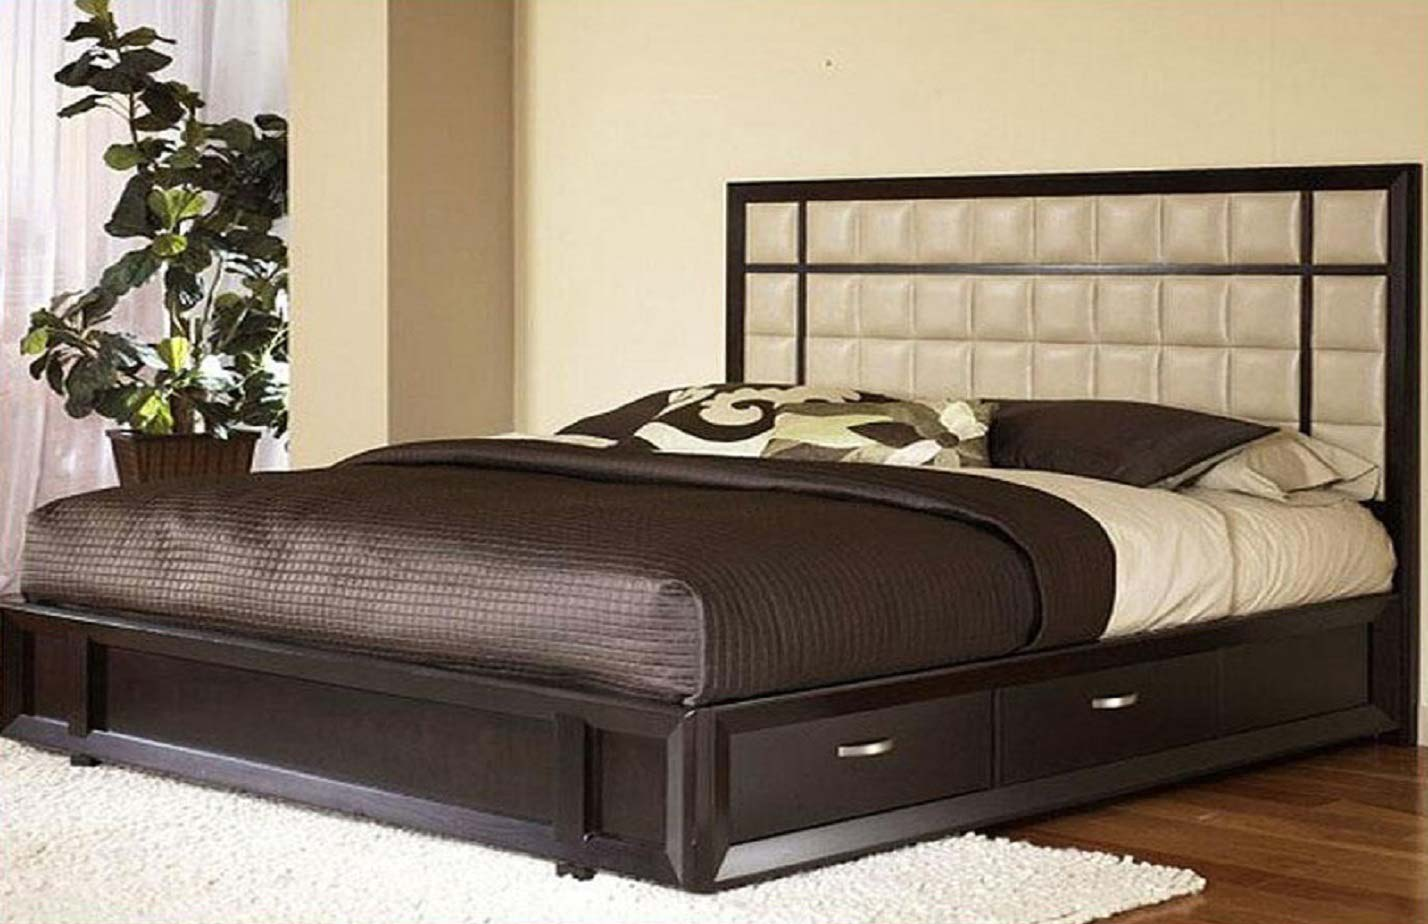 Wooden box bed design - Unmatched Quality Varied Colors